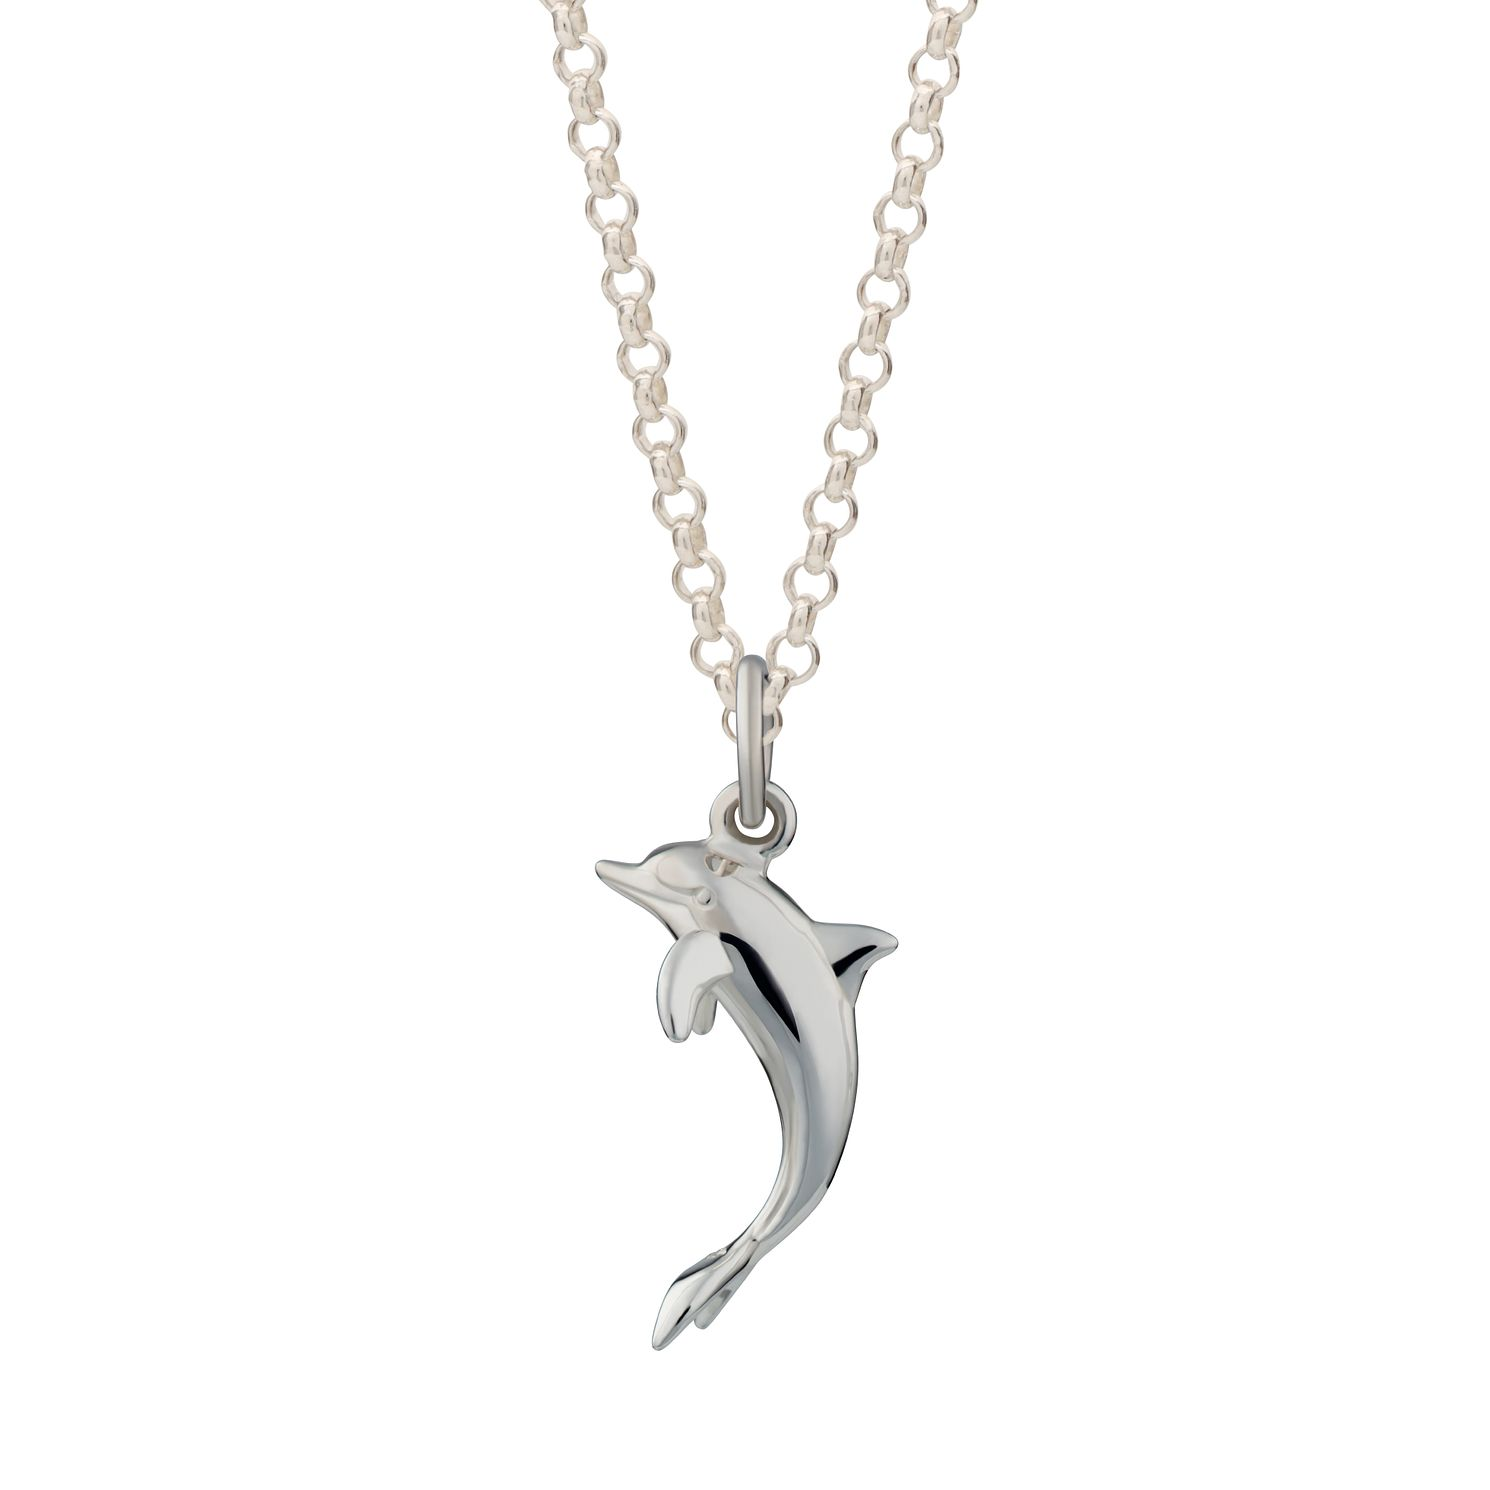 Lily Charmed Silver Live As You Dream Dolphin Necklace - Product number 4546865